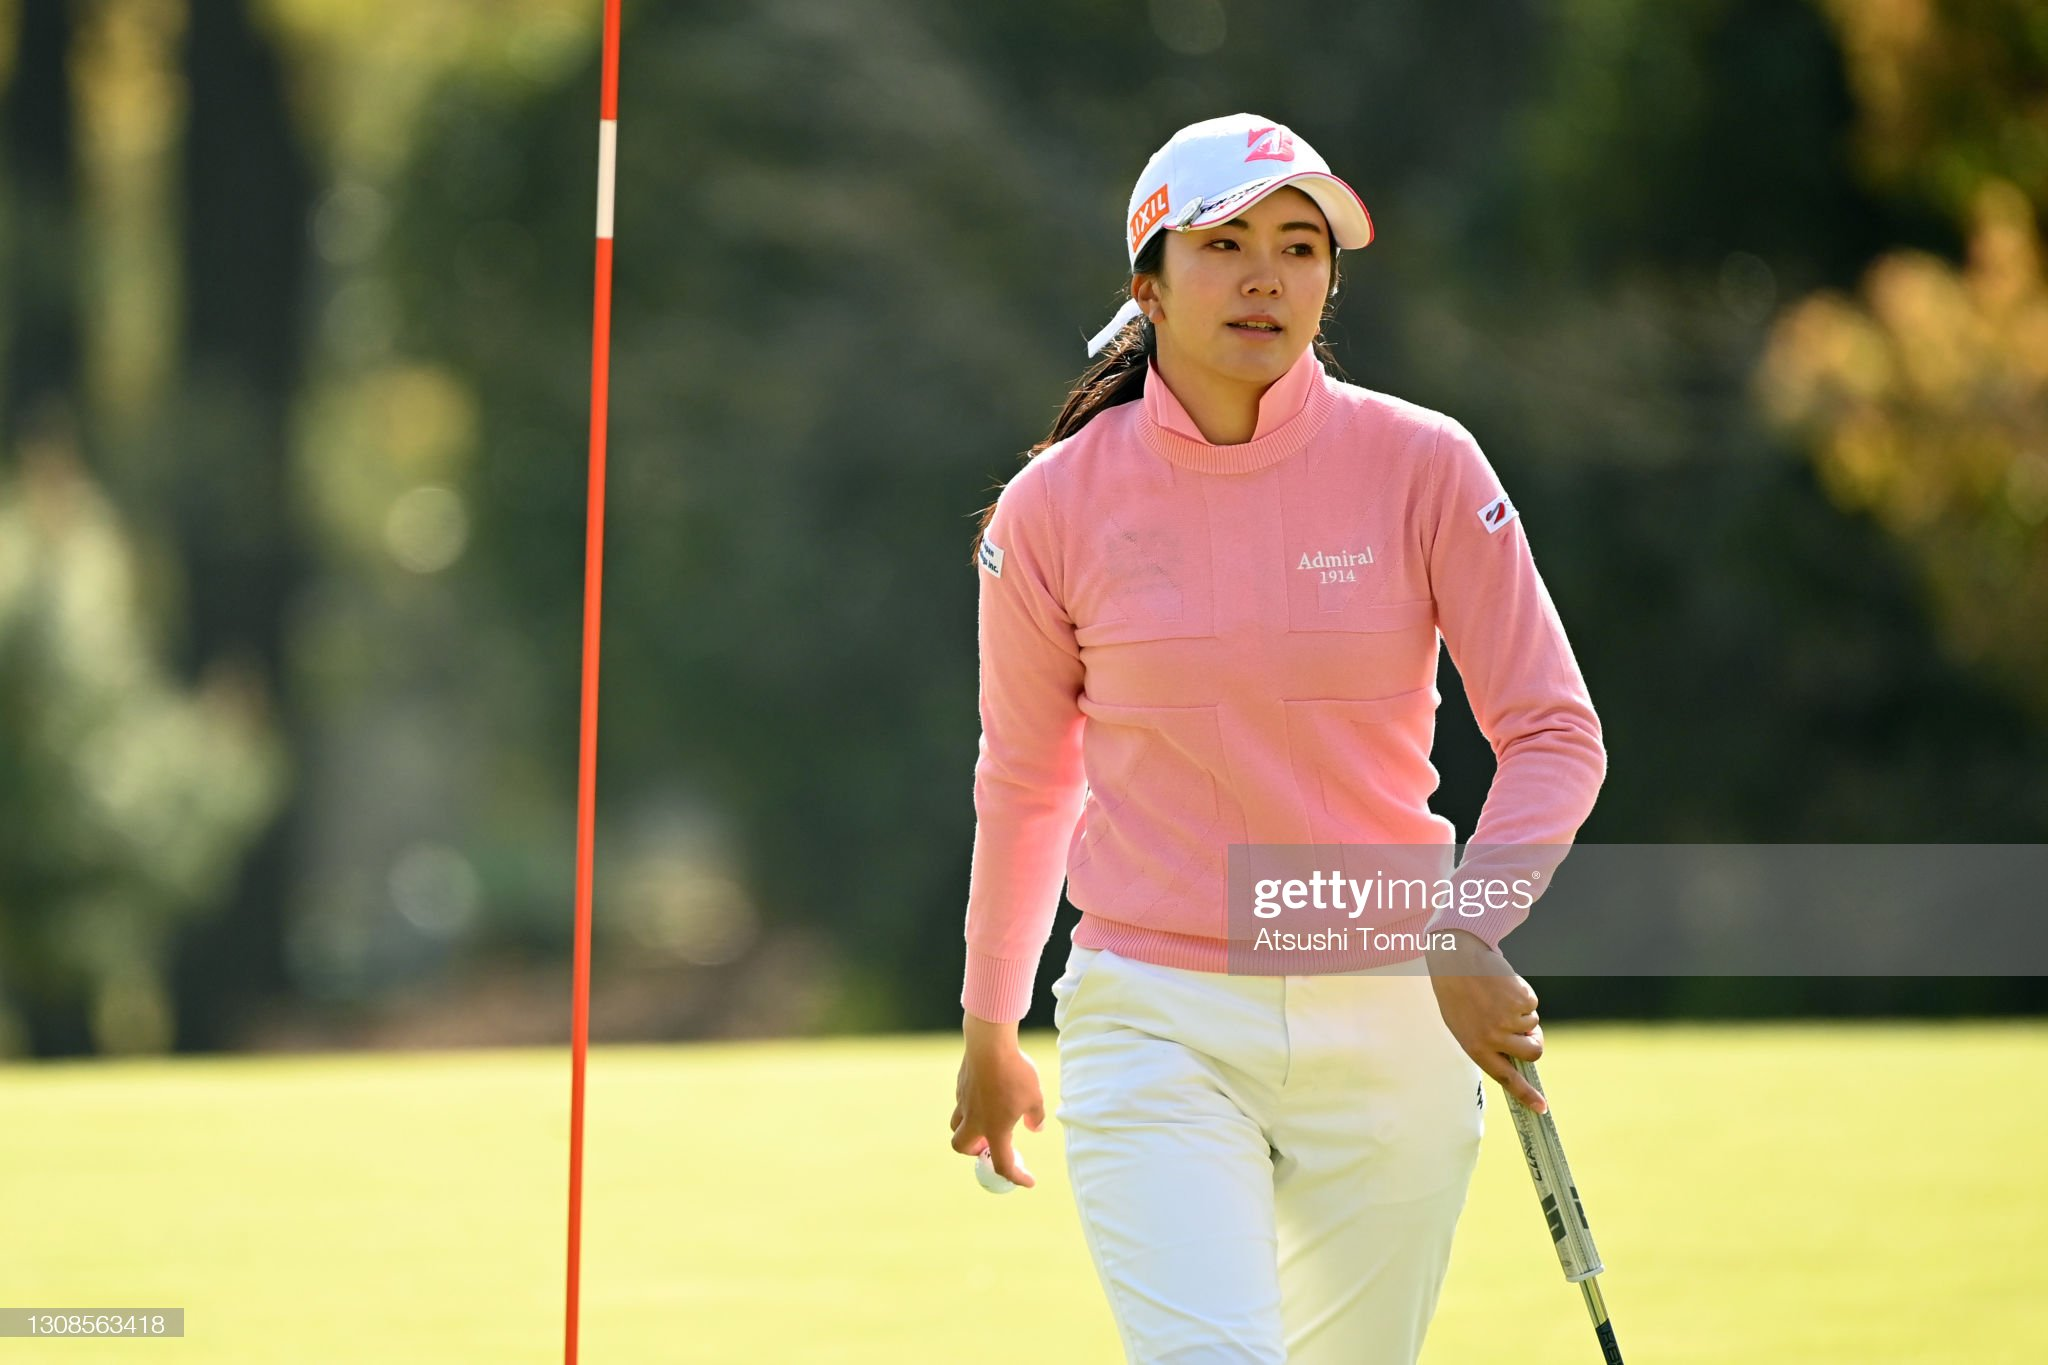 https://media.gettyimages.com/photos/kotone-hori-of-japan-is-seen-after-holing-out-on-the-18th-green-the-picture-id1308563418?s=2048x2048